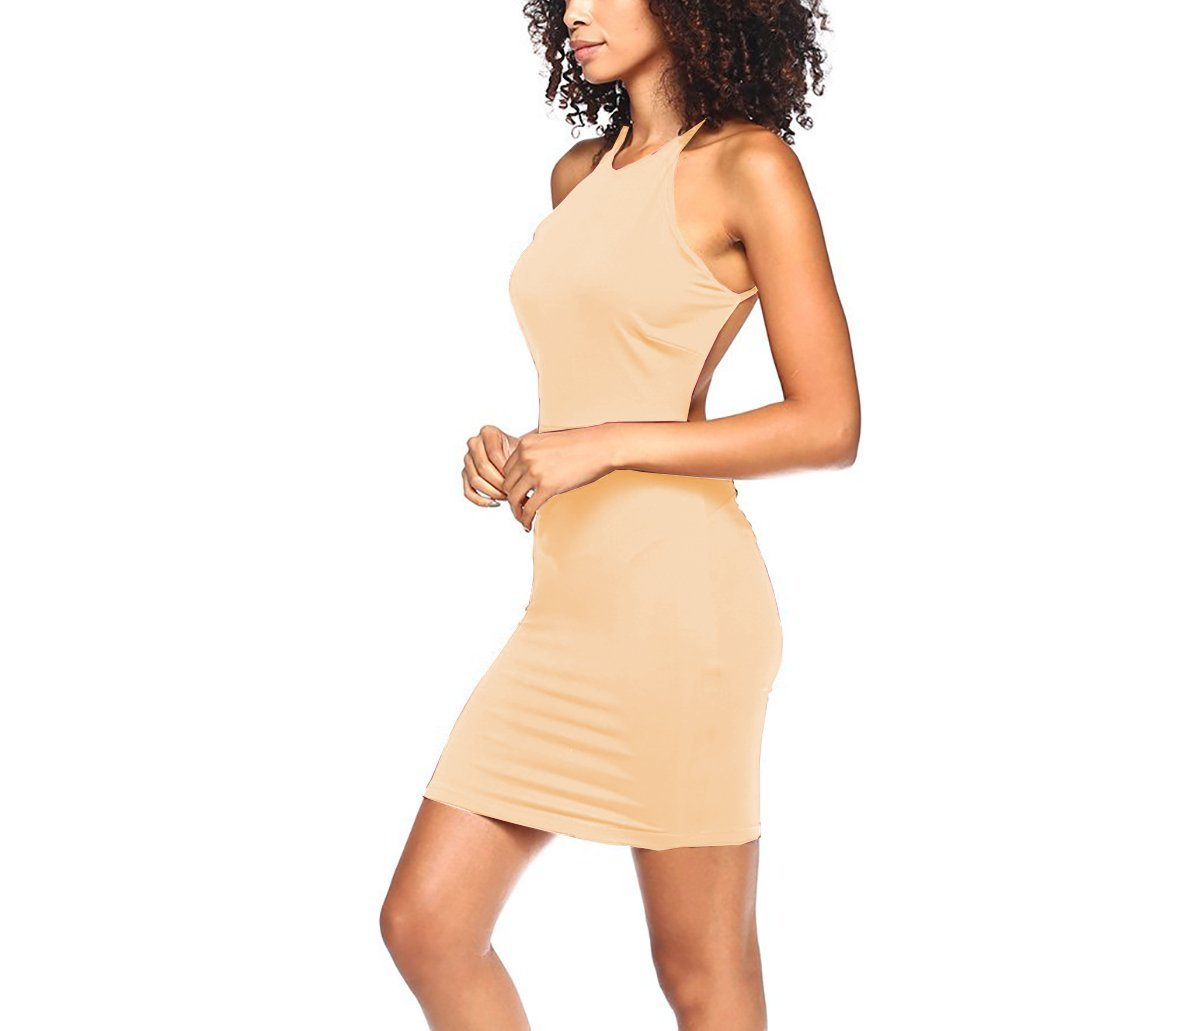 Glass House Apparel Women's Backless Cocktail Halter Spaghetti Strap Bodycon Dress (Nude, Medium)